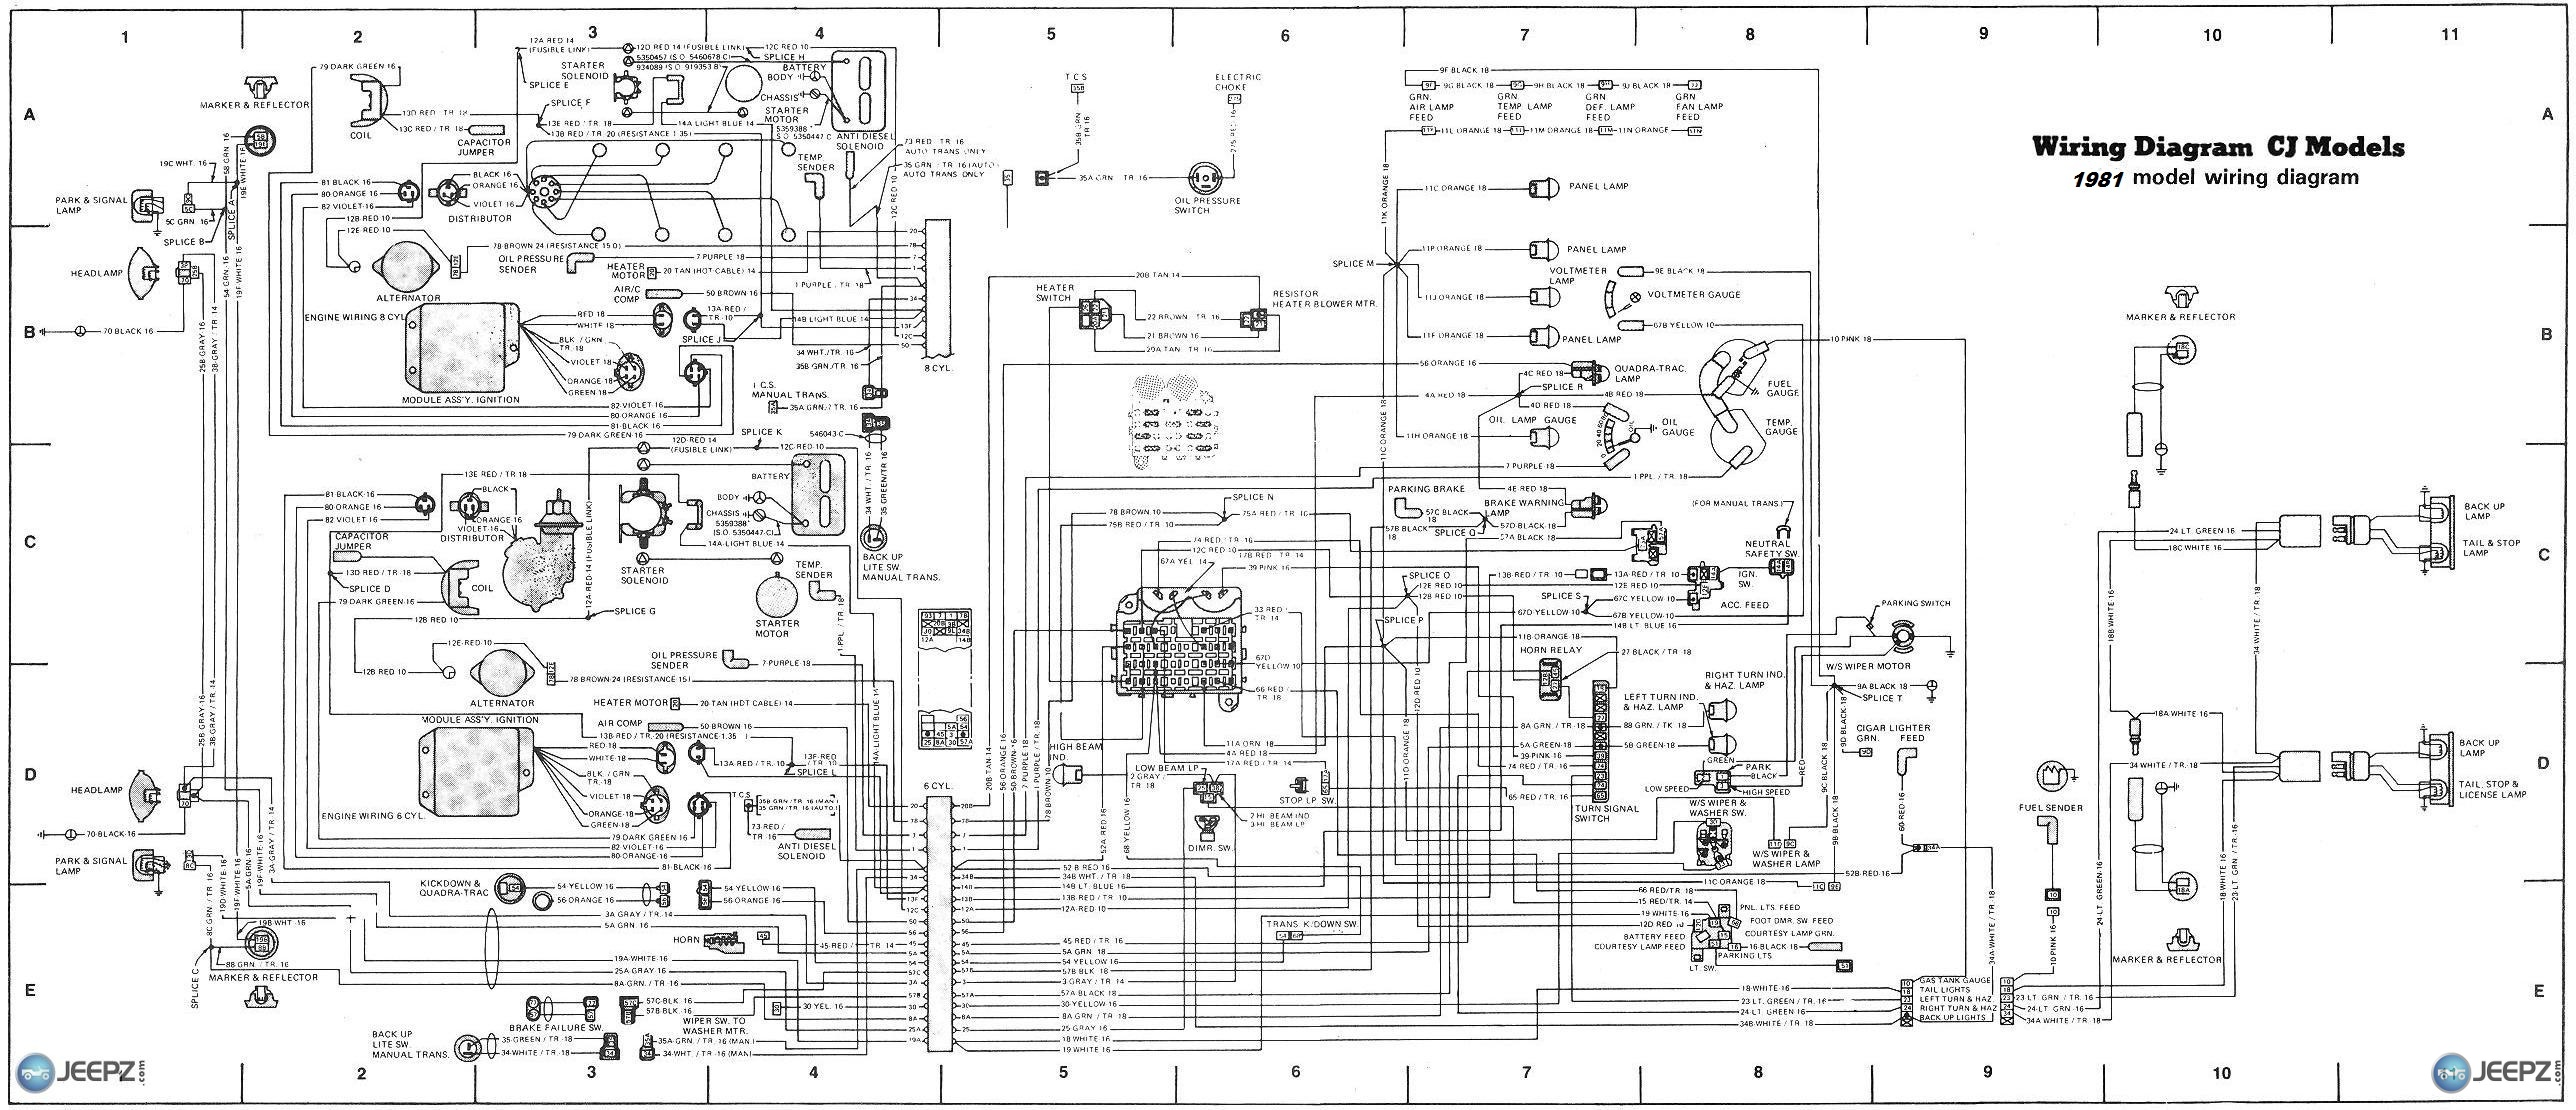 7993d1301845049 cj 7 wire diagram cj wiring diagram 1981 diagrams 16001174 lionel 258 engine wiring diagram lionel 258 onity ca22 wiring diagram at alyssarenee.co